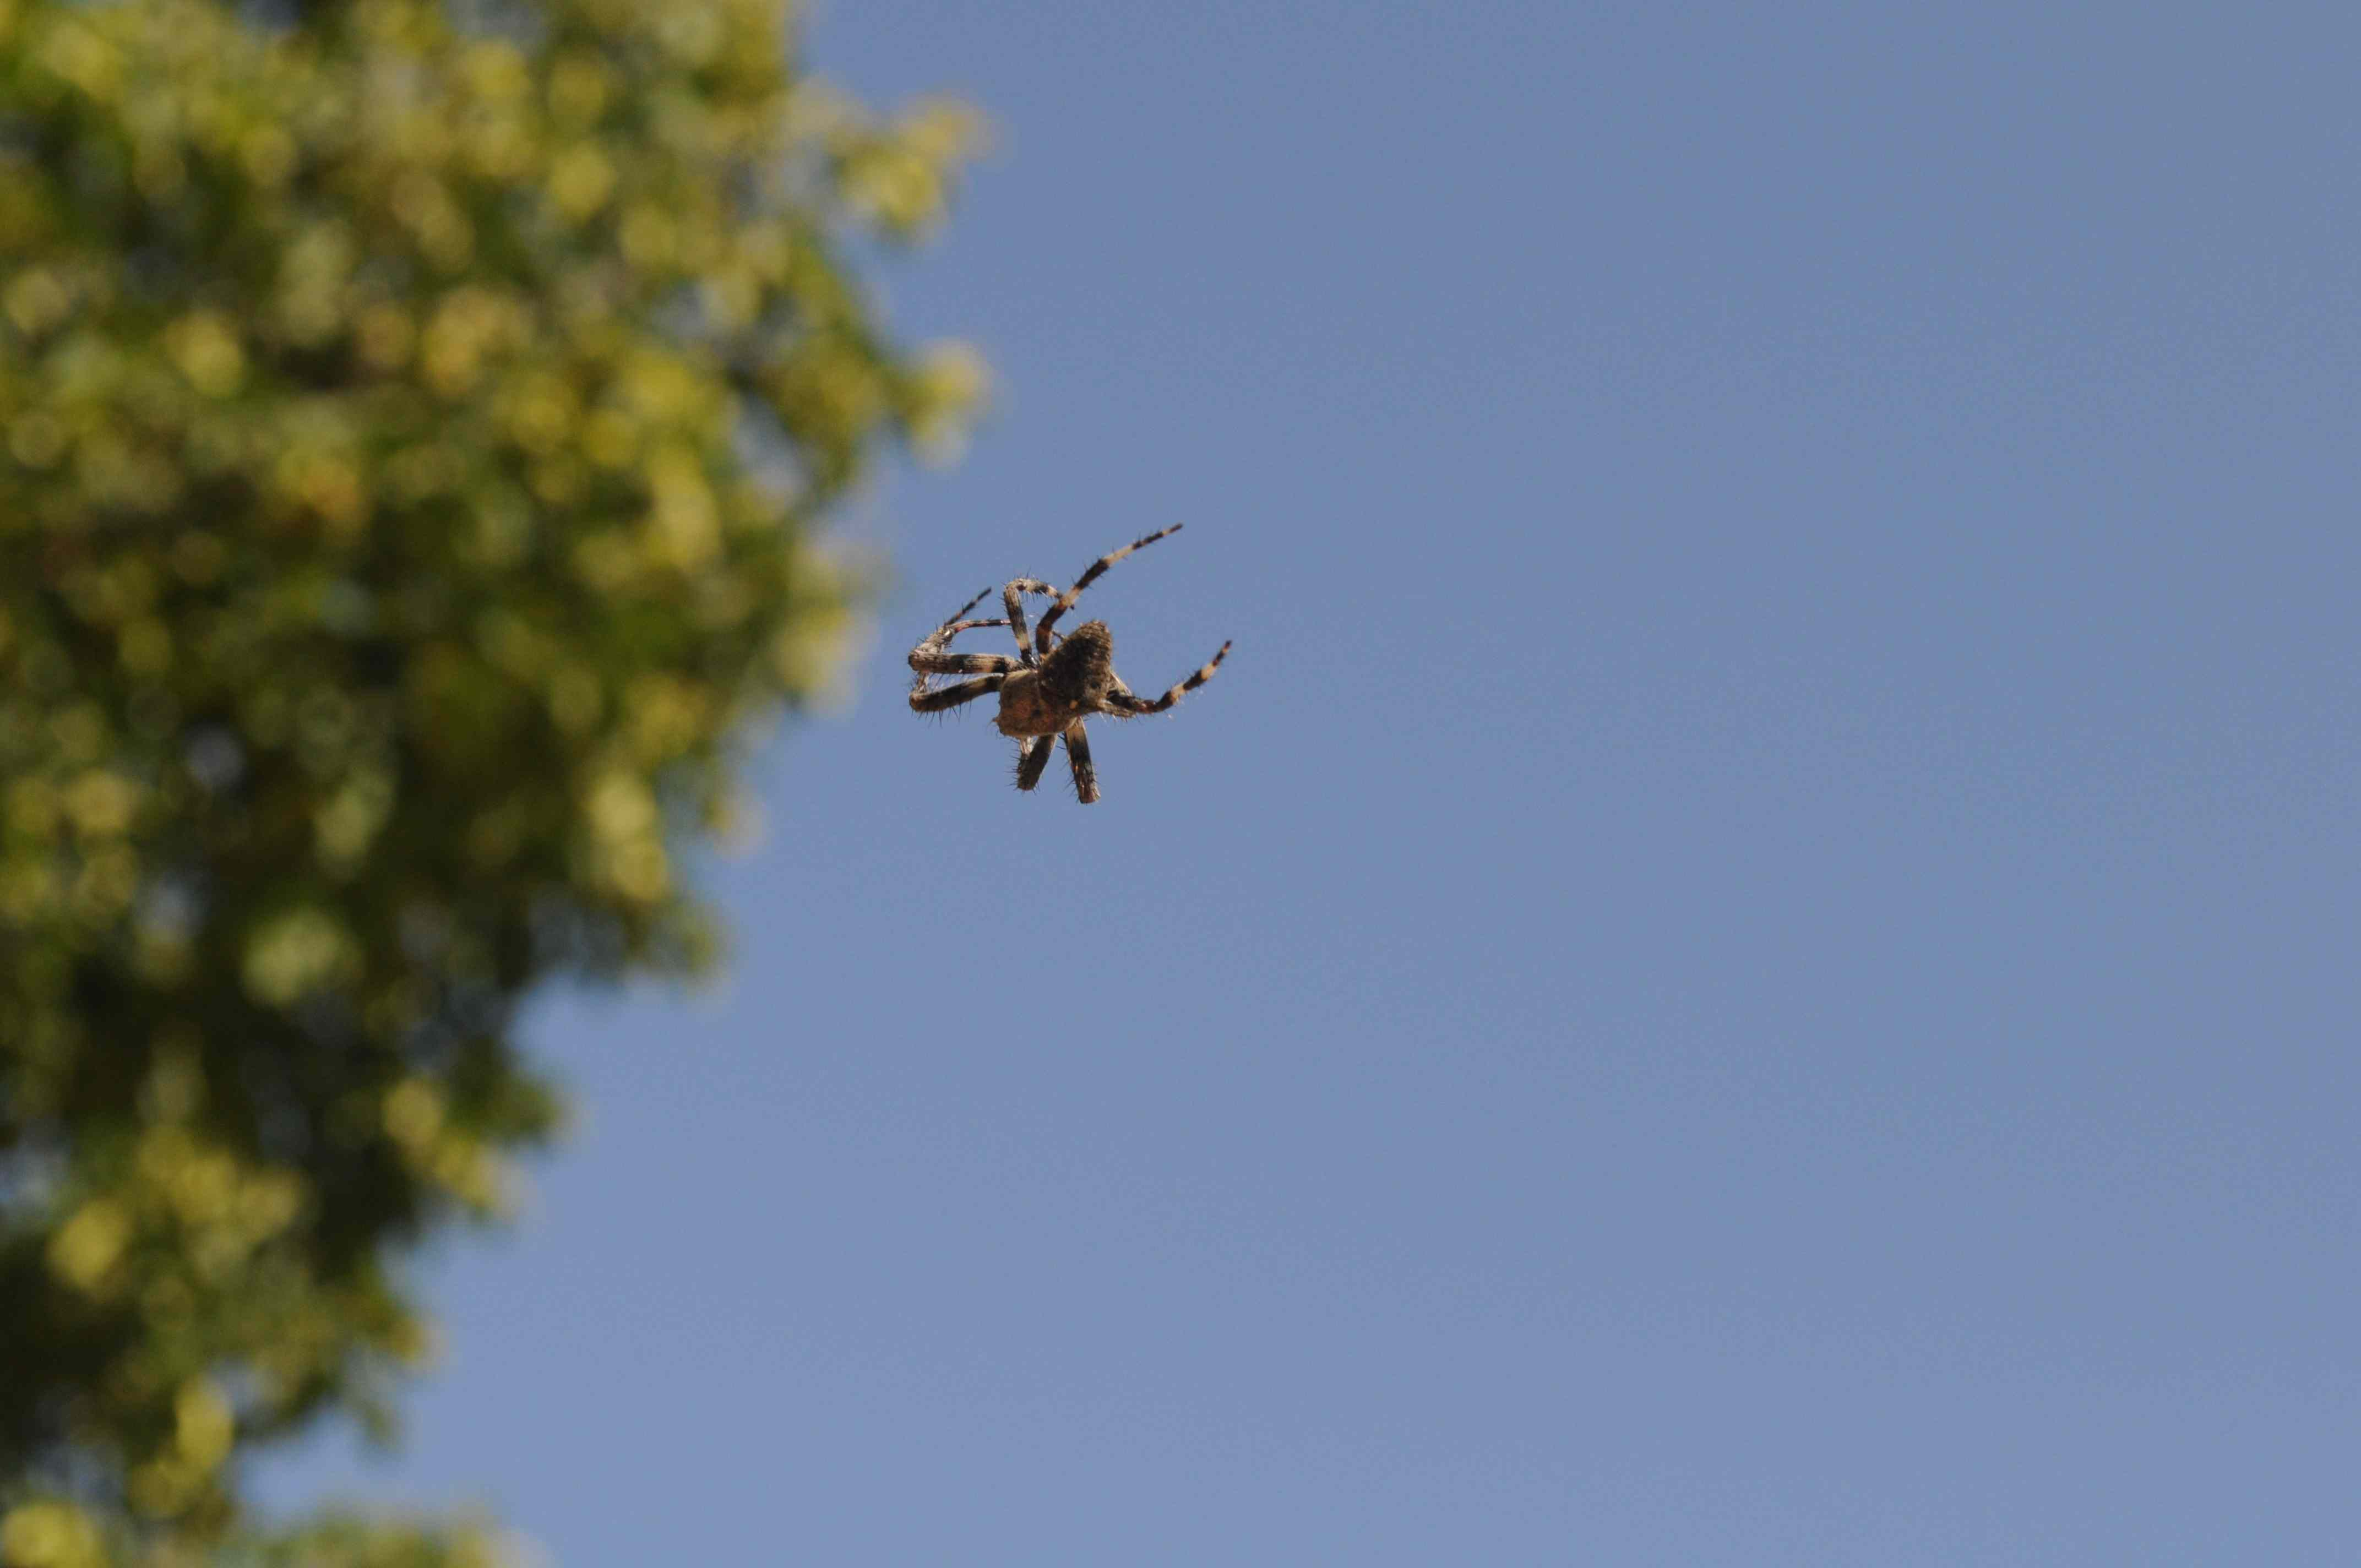 Spider seen in the air with a blue sky in background